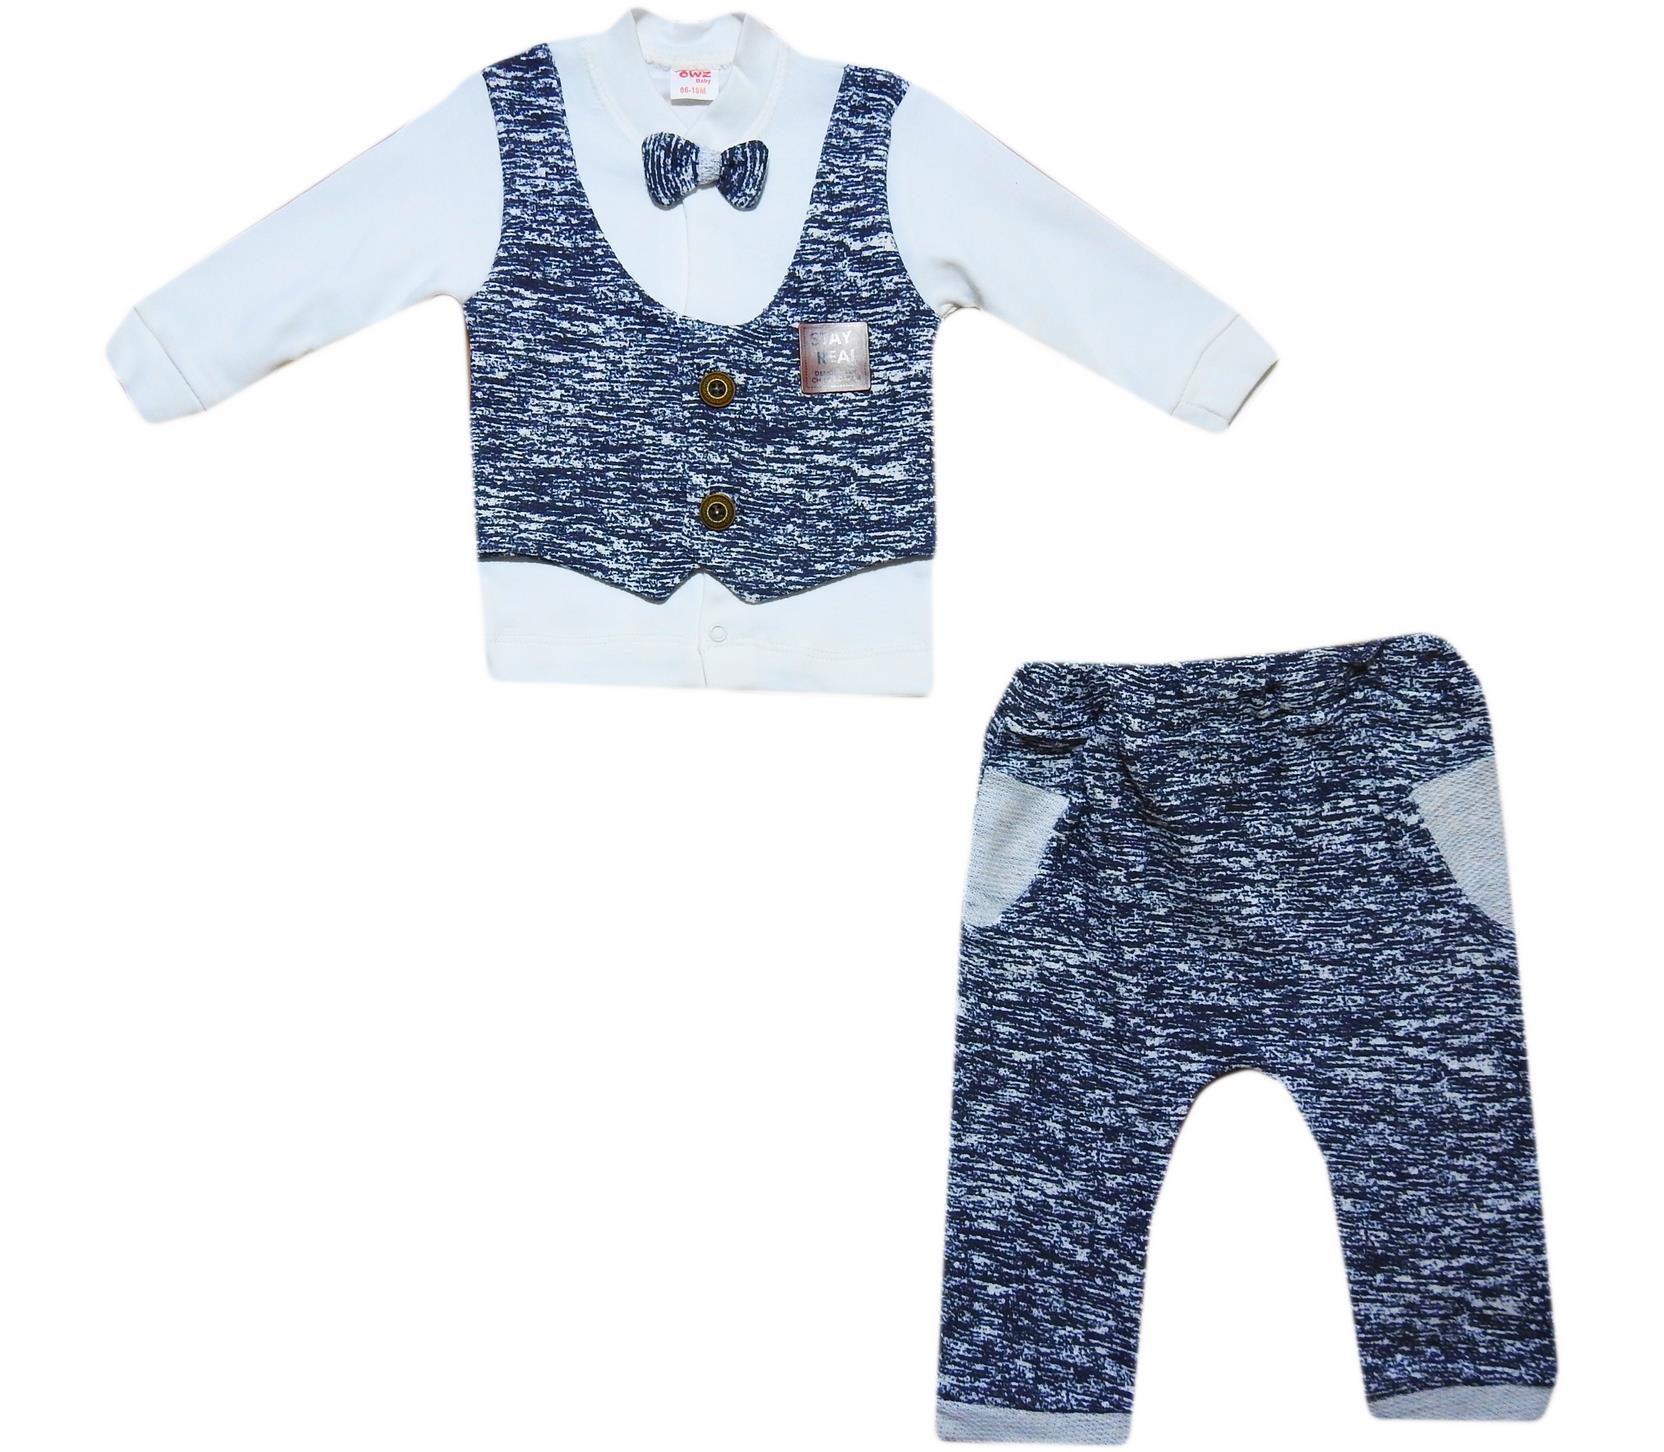 289 Wholesale two-piece suit for kids, blouse with vest+pants for boys 9-12-18 months